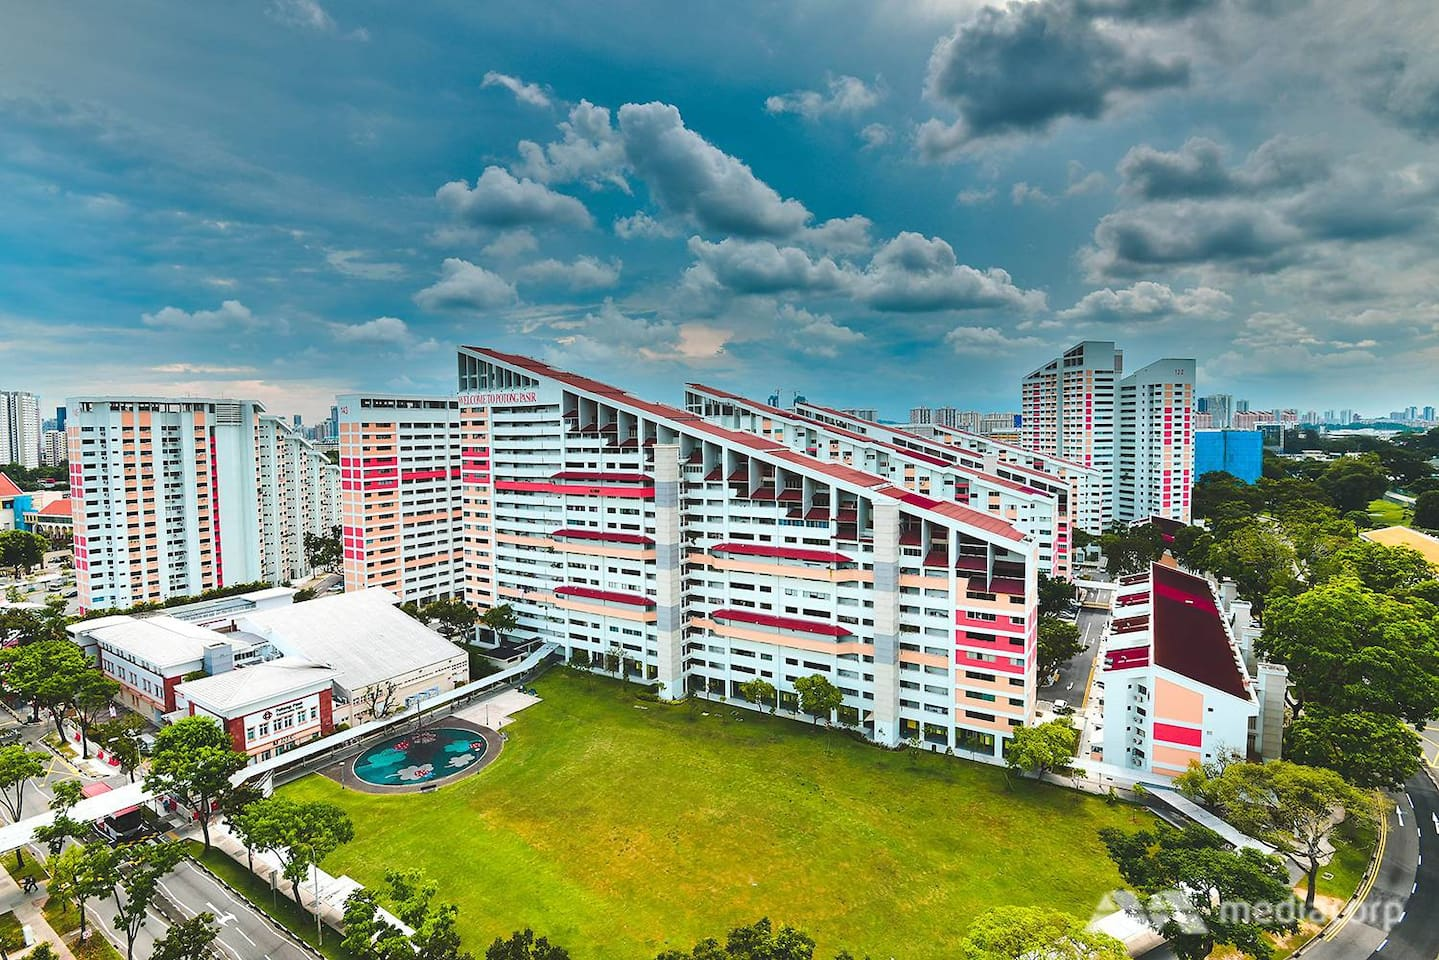 Ski slope architecture trademark in central SG @ Potong Pasir